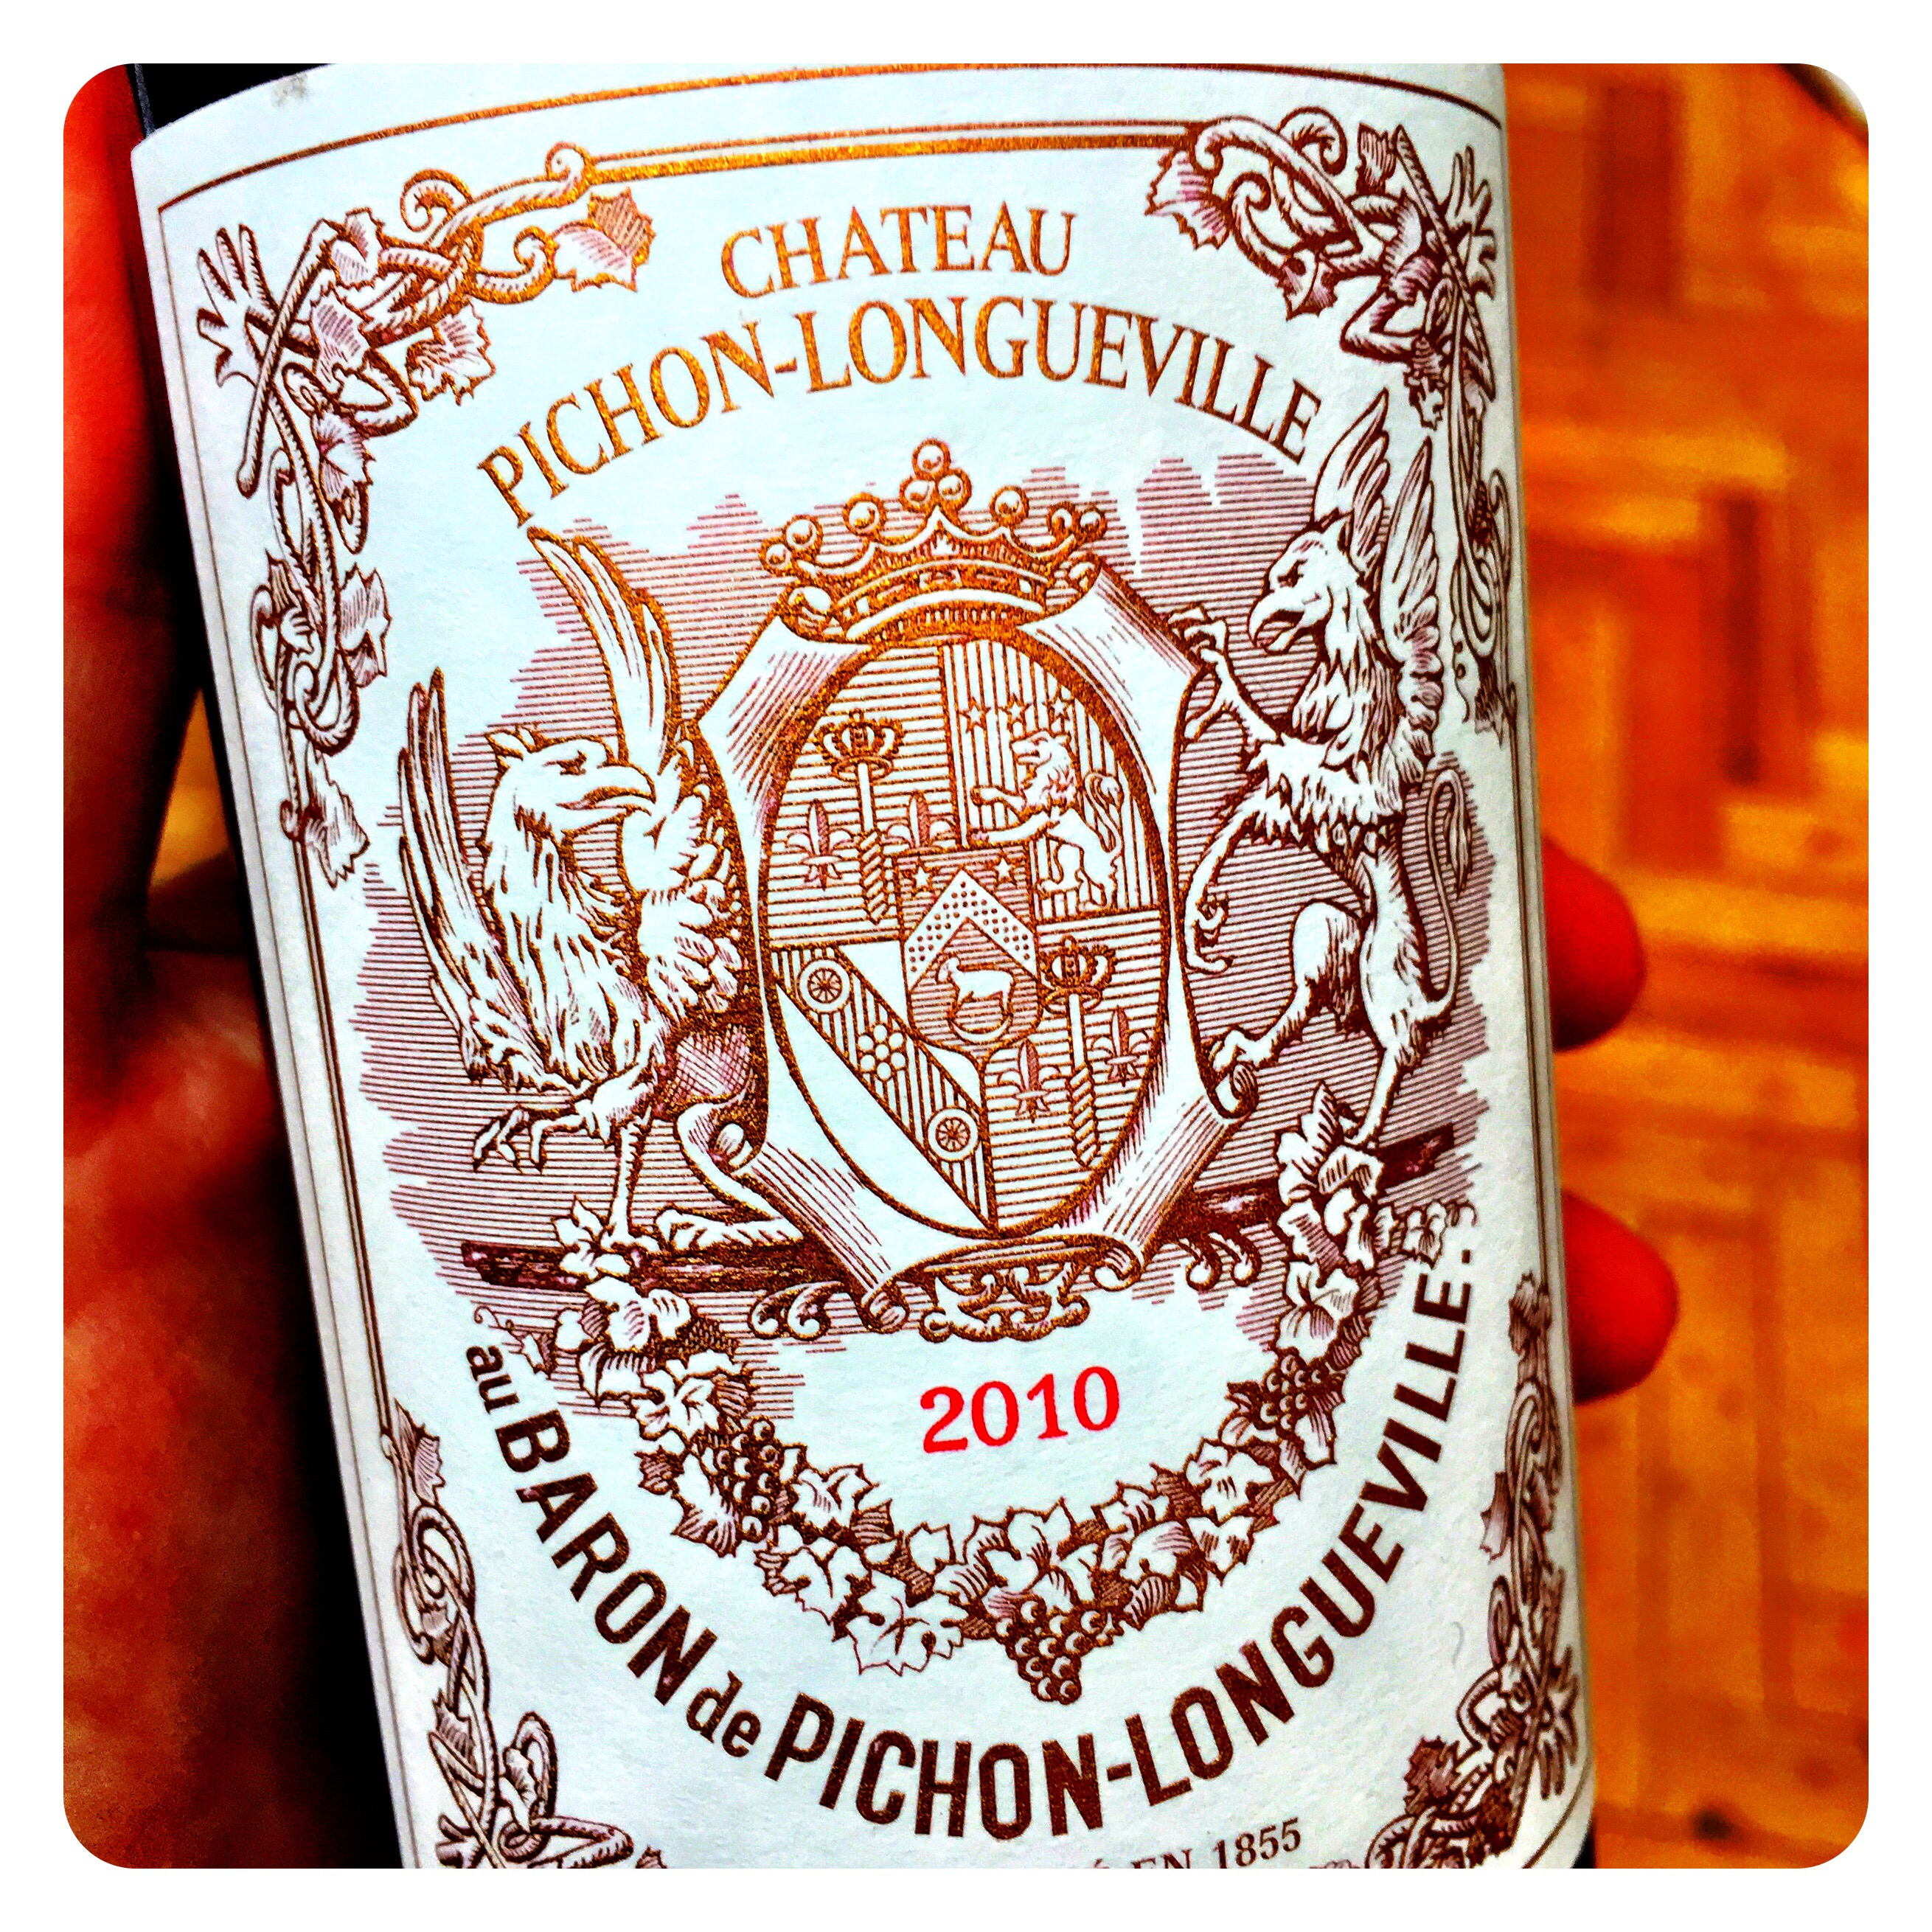 Chateau Pichon-Longueville Baron 2010 – Tasting Another of